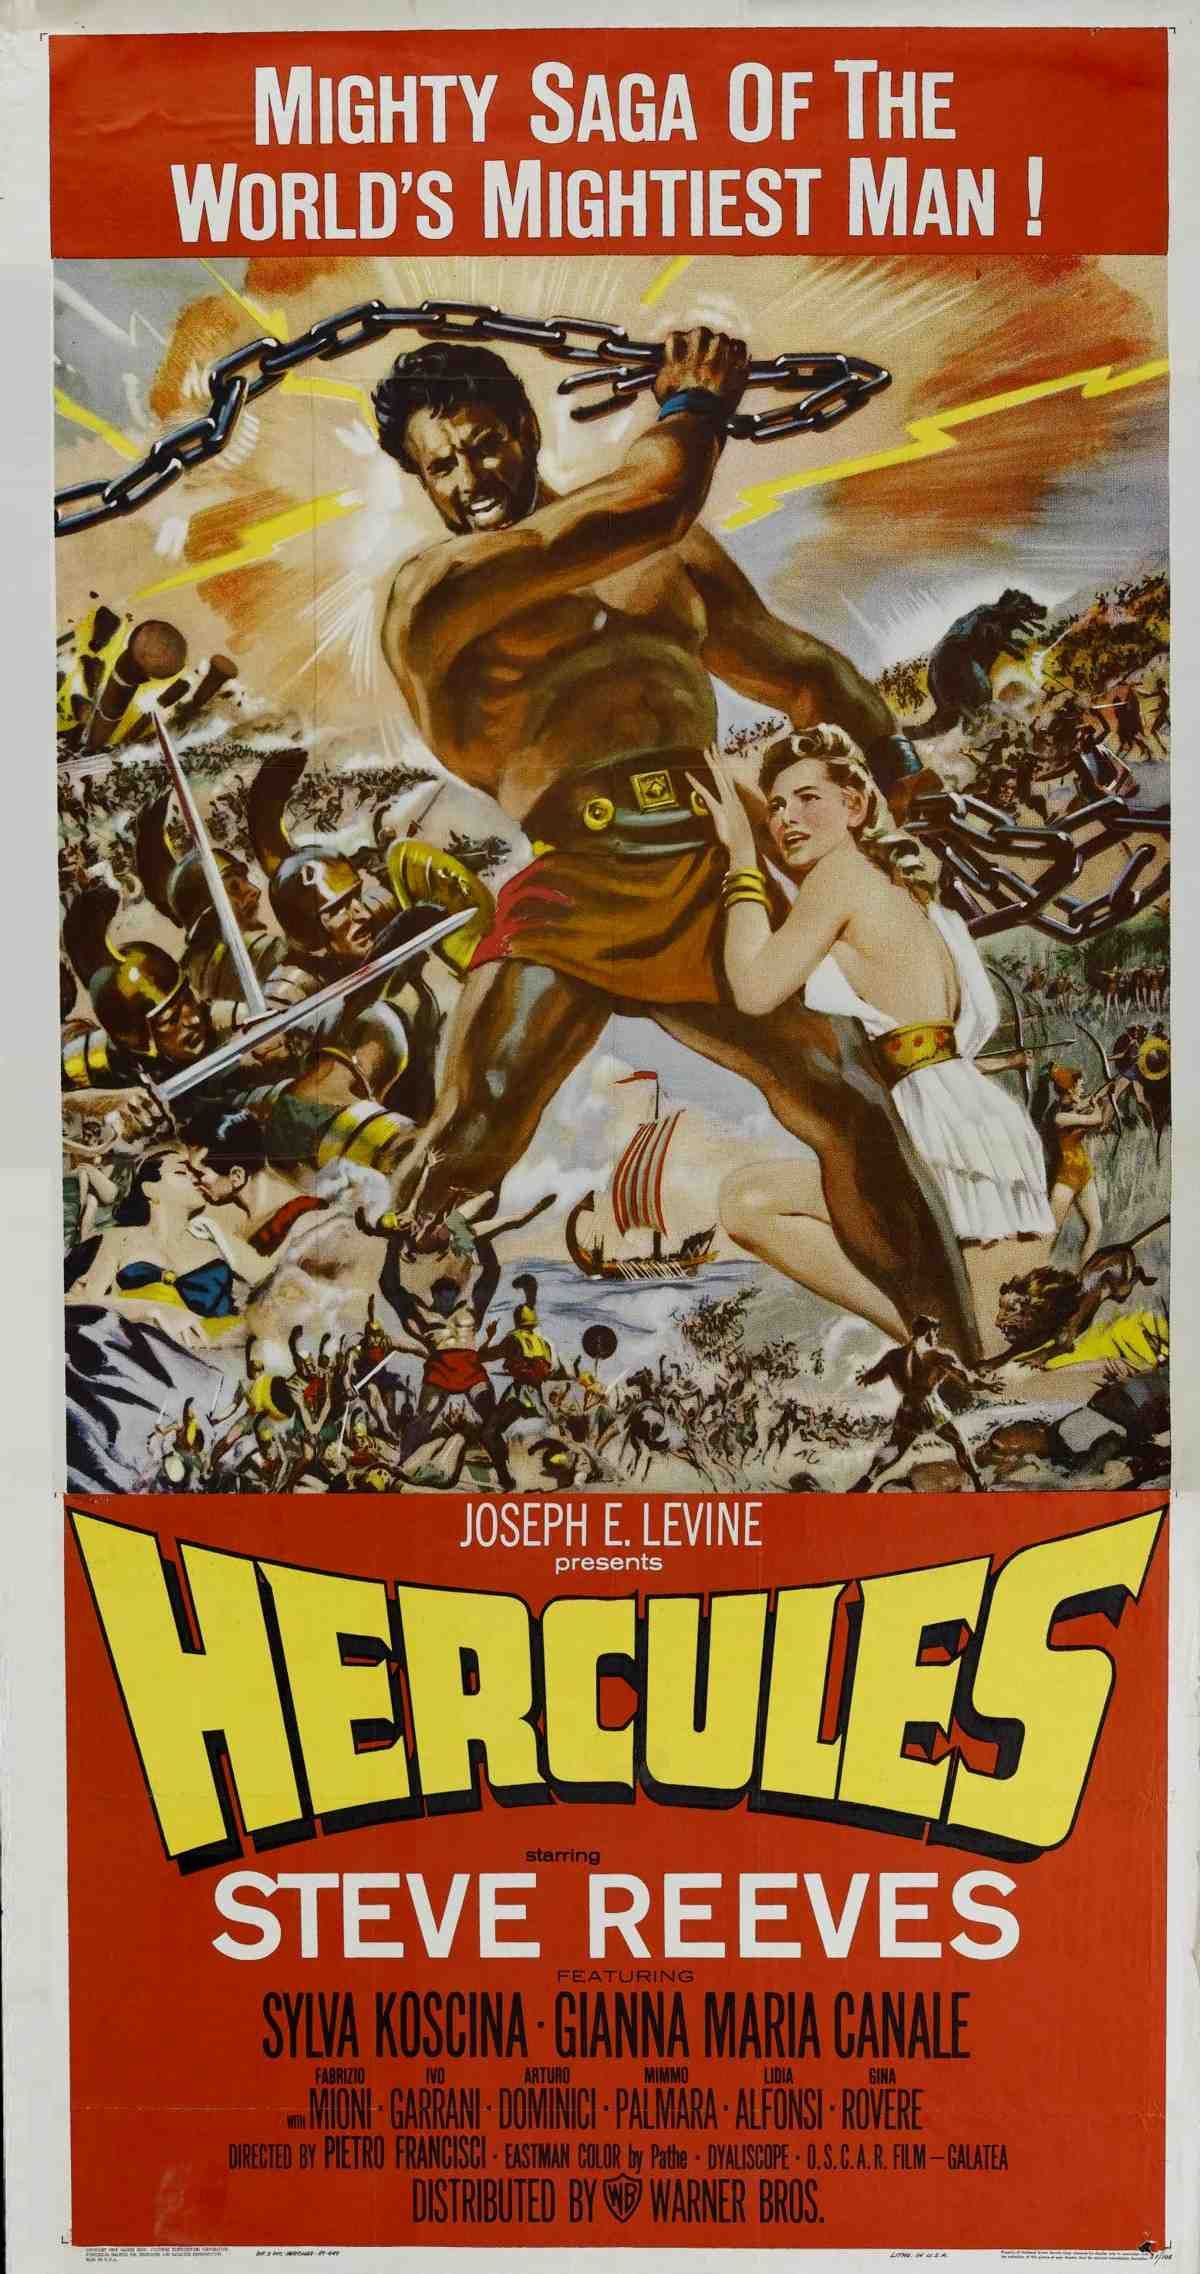 Hercules 1958 Is A Cinema Trash Classic With Steve Reeves As The